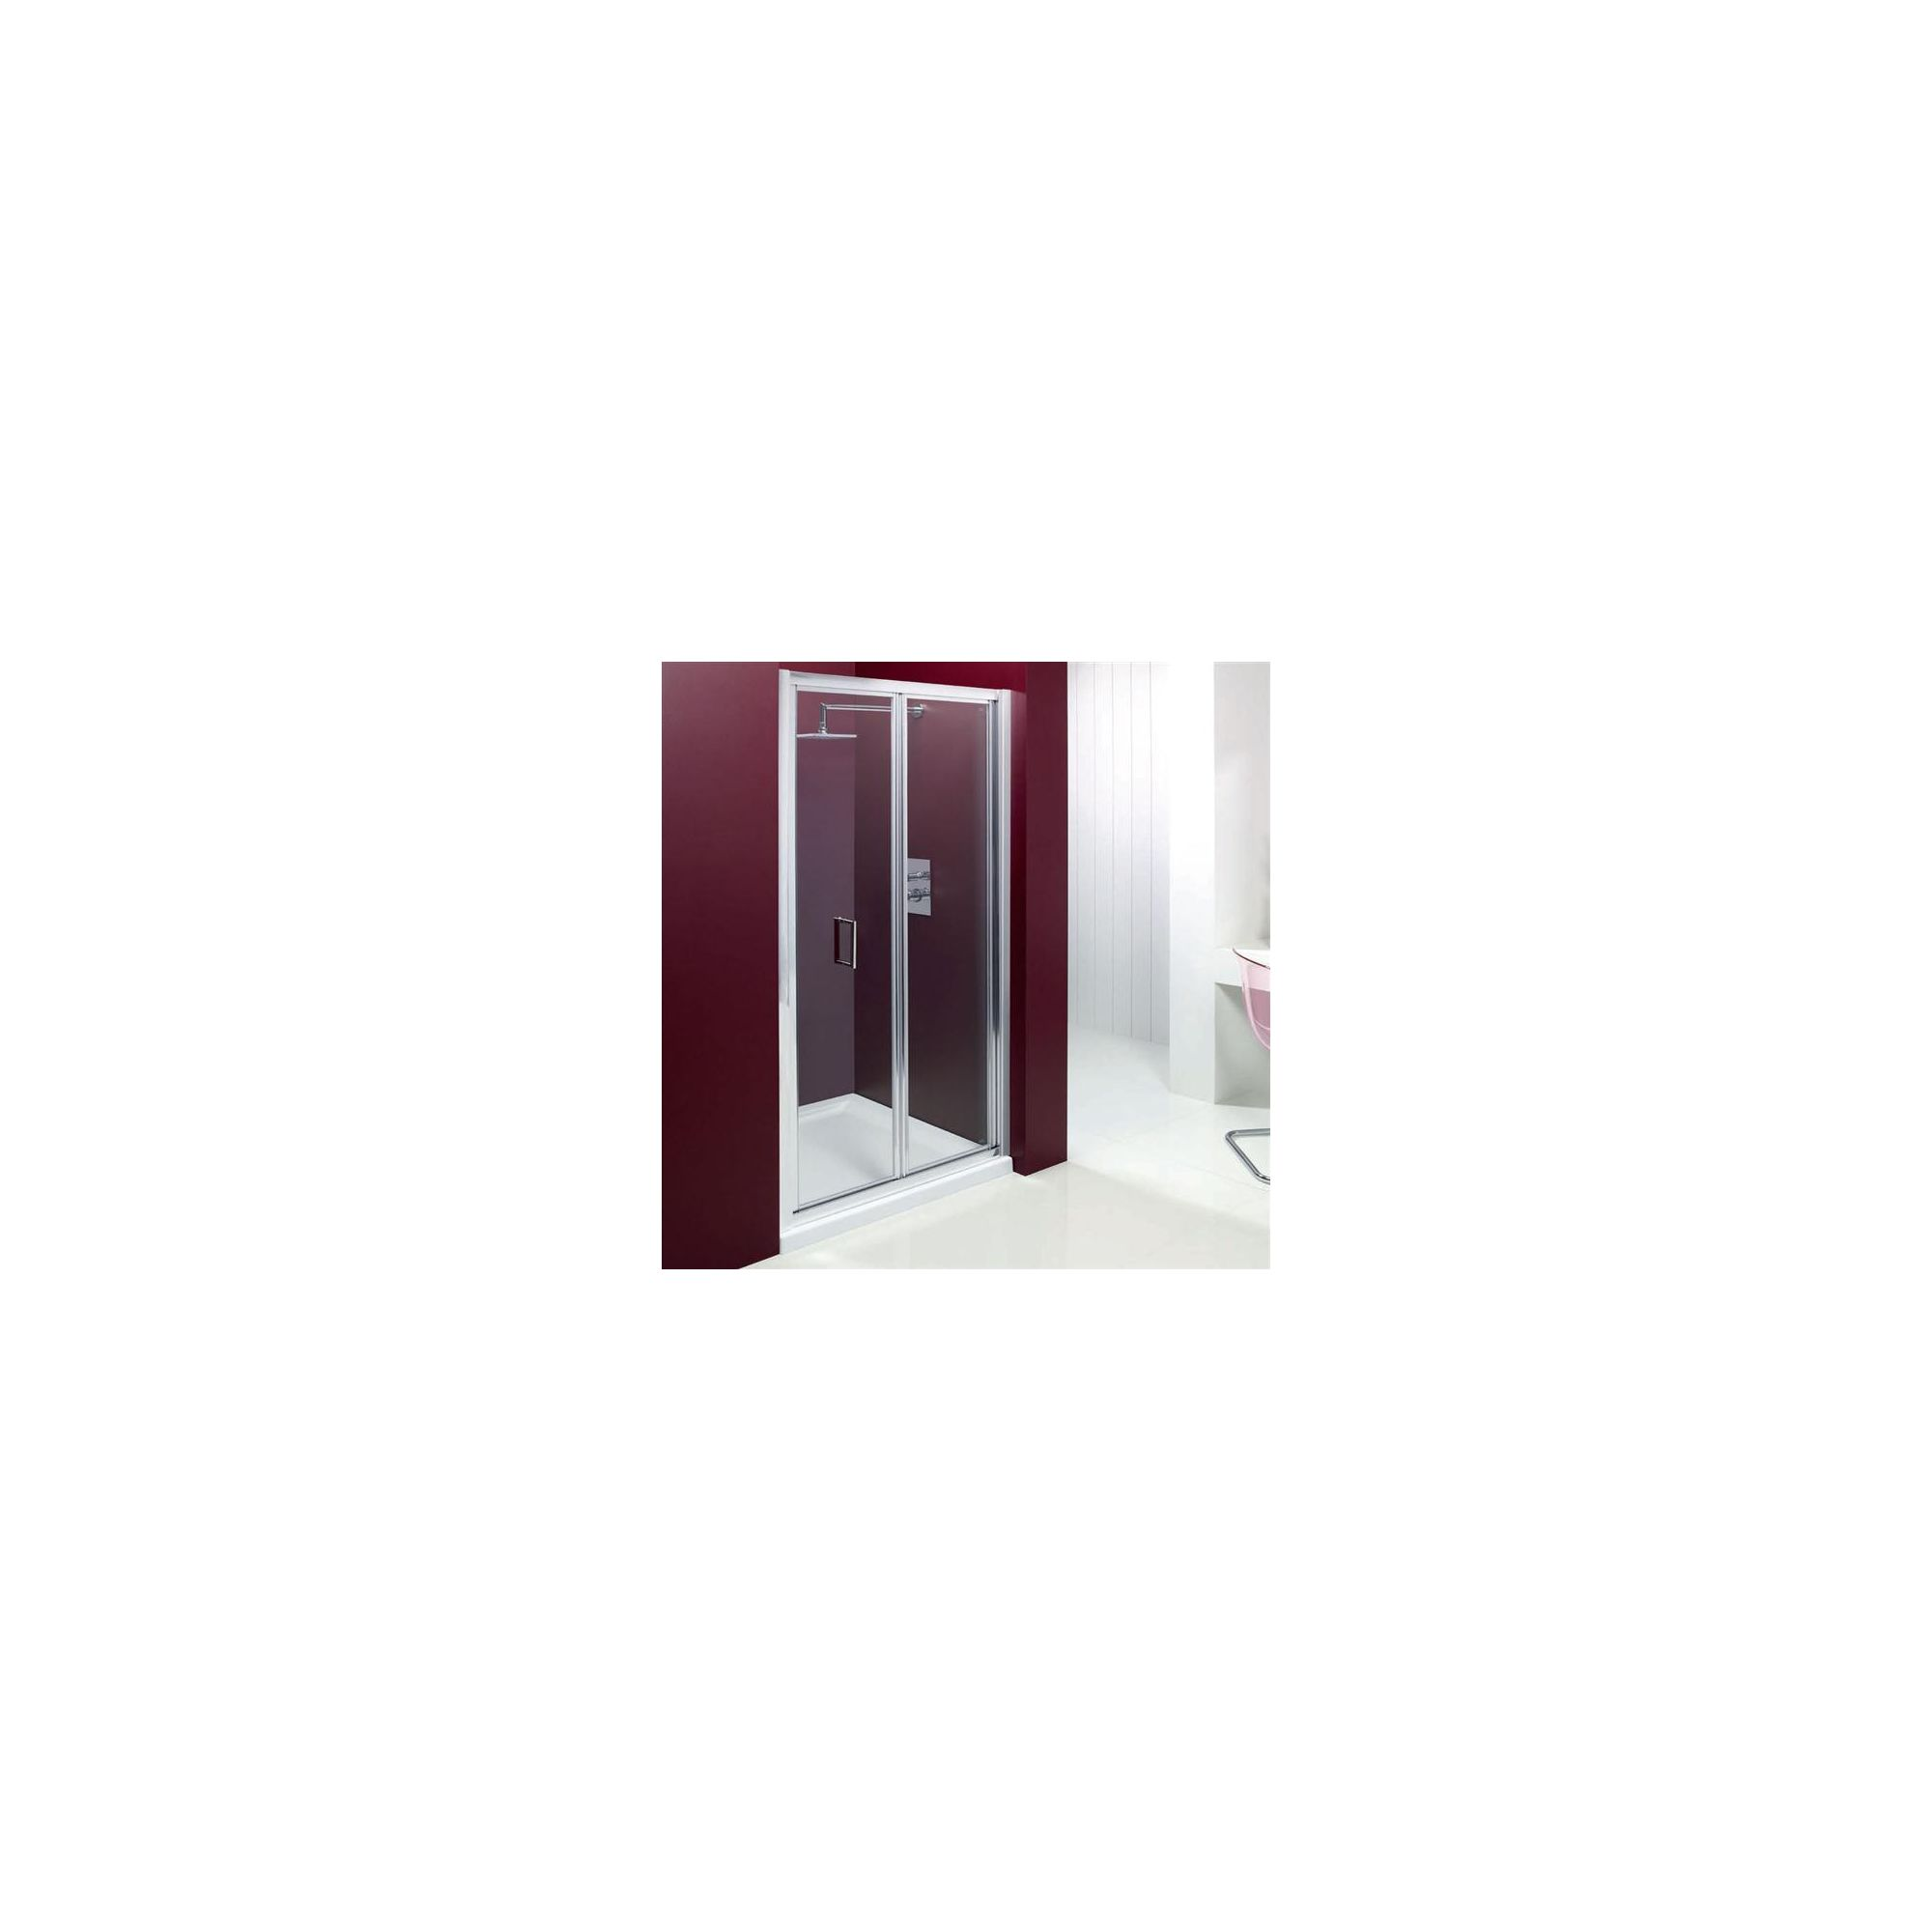 Merlyn Vivid Entree Bi-Fold Door Alcove Shower Enclosure, 800mm x 800mm, Low Profile Tray, 6mm Glass at Tesco Direct